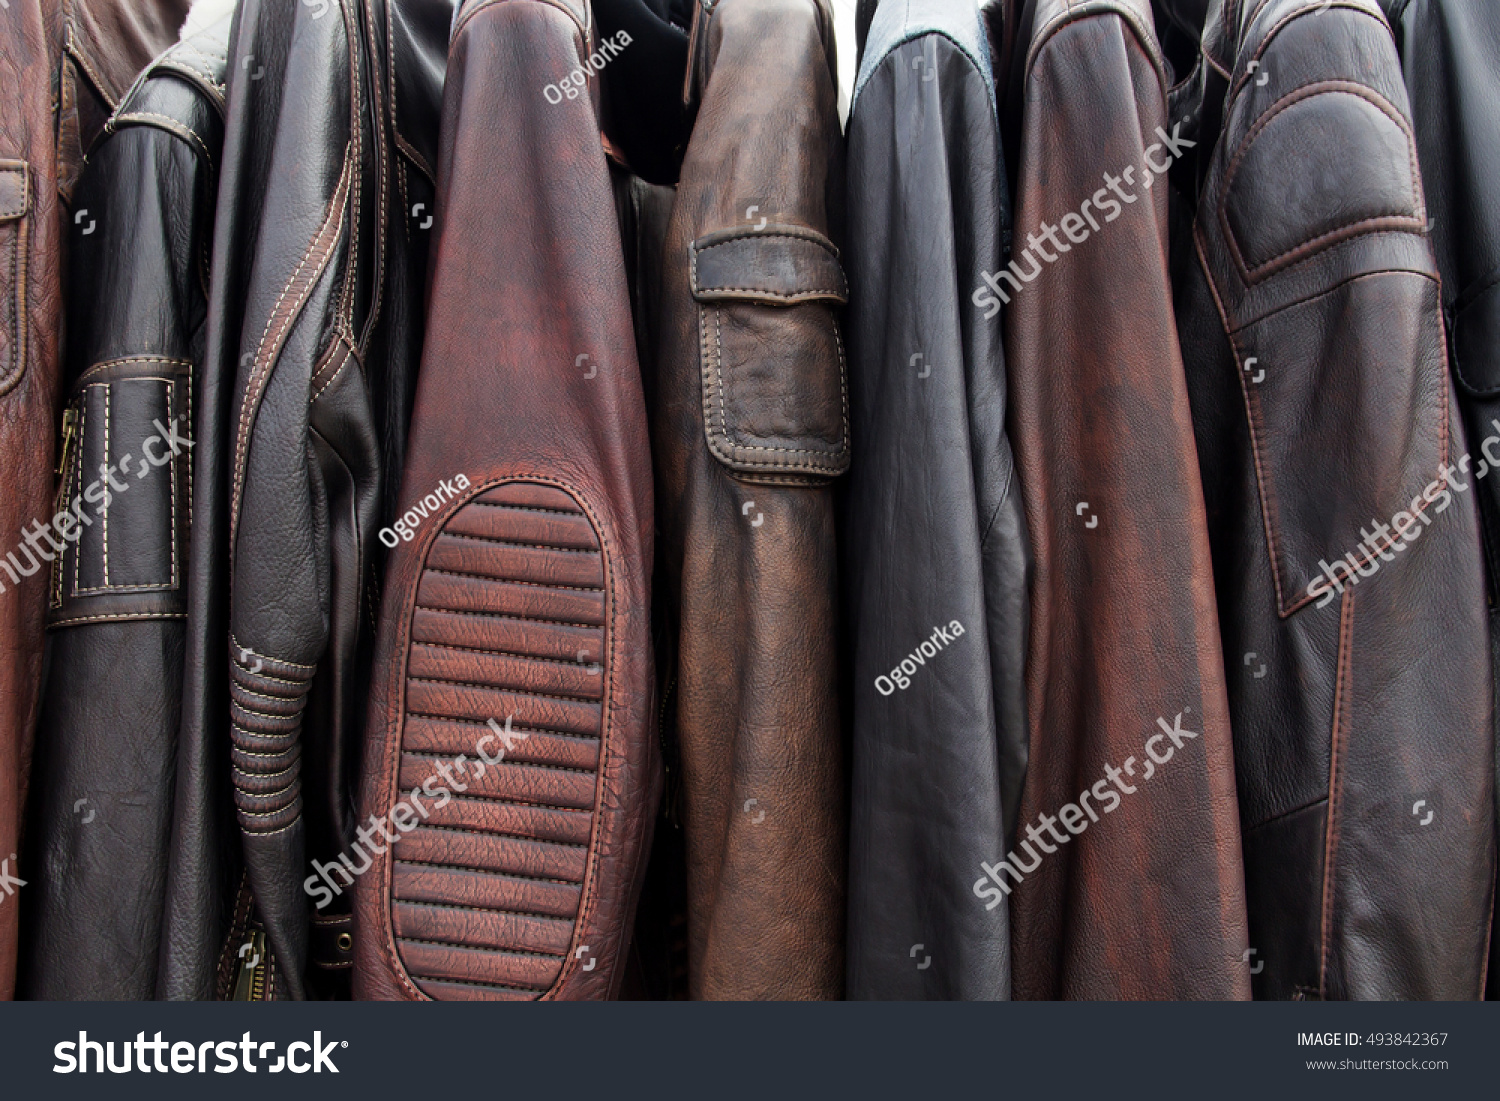 Collection Leather Jackets On Hangers Shop Stock Photo 493842367 ...